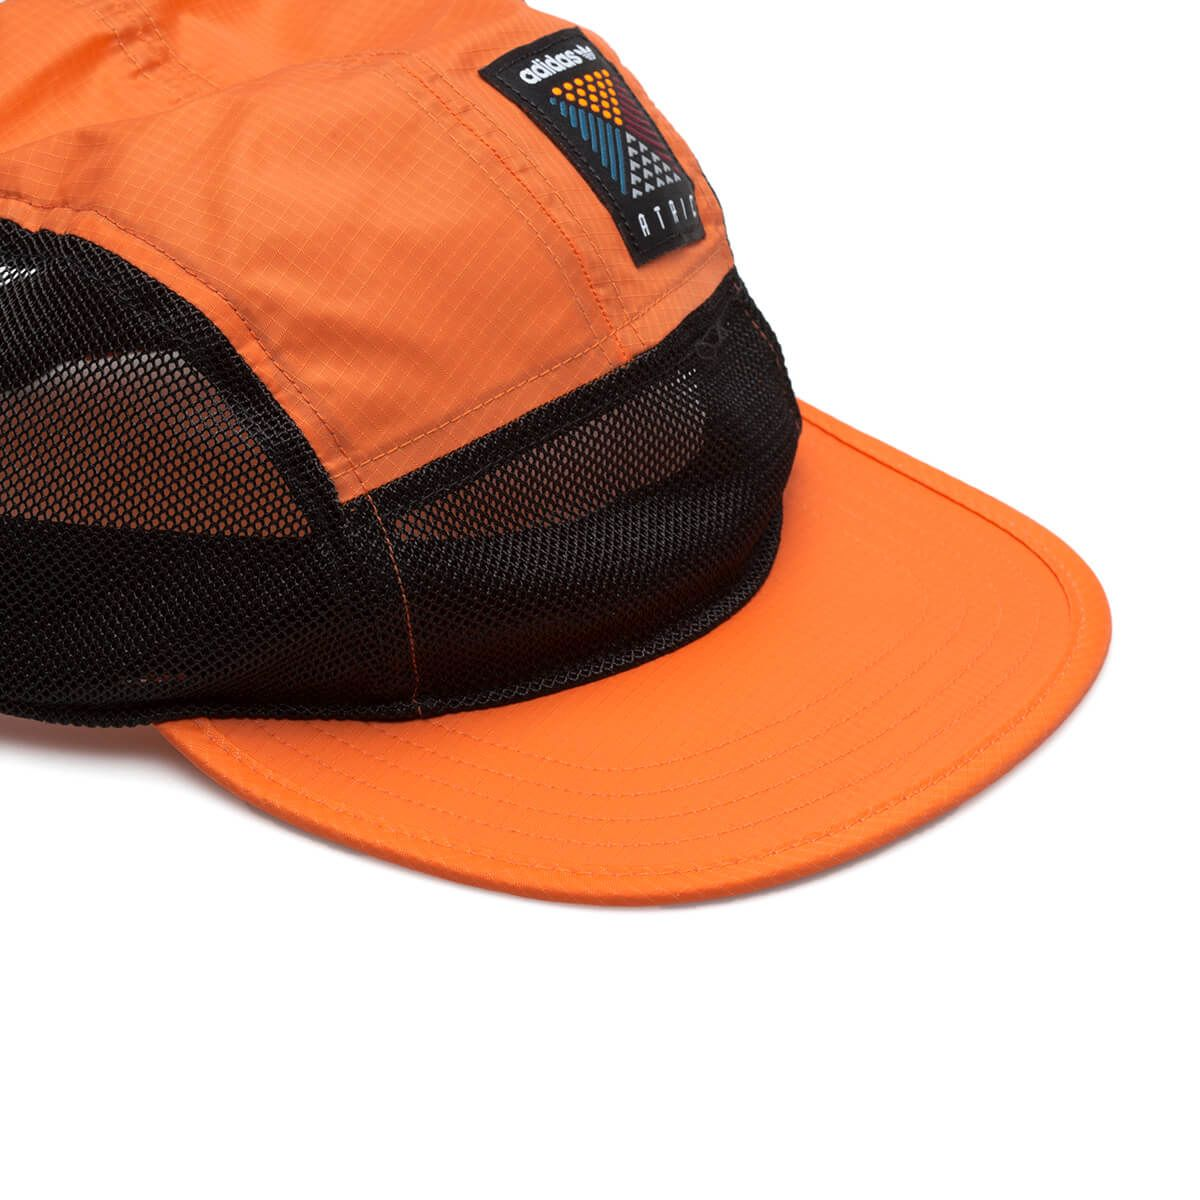 f396977af45 Adidas Originals Adidas Originals Atric Cap - Orange - 10647974 ...